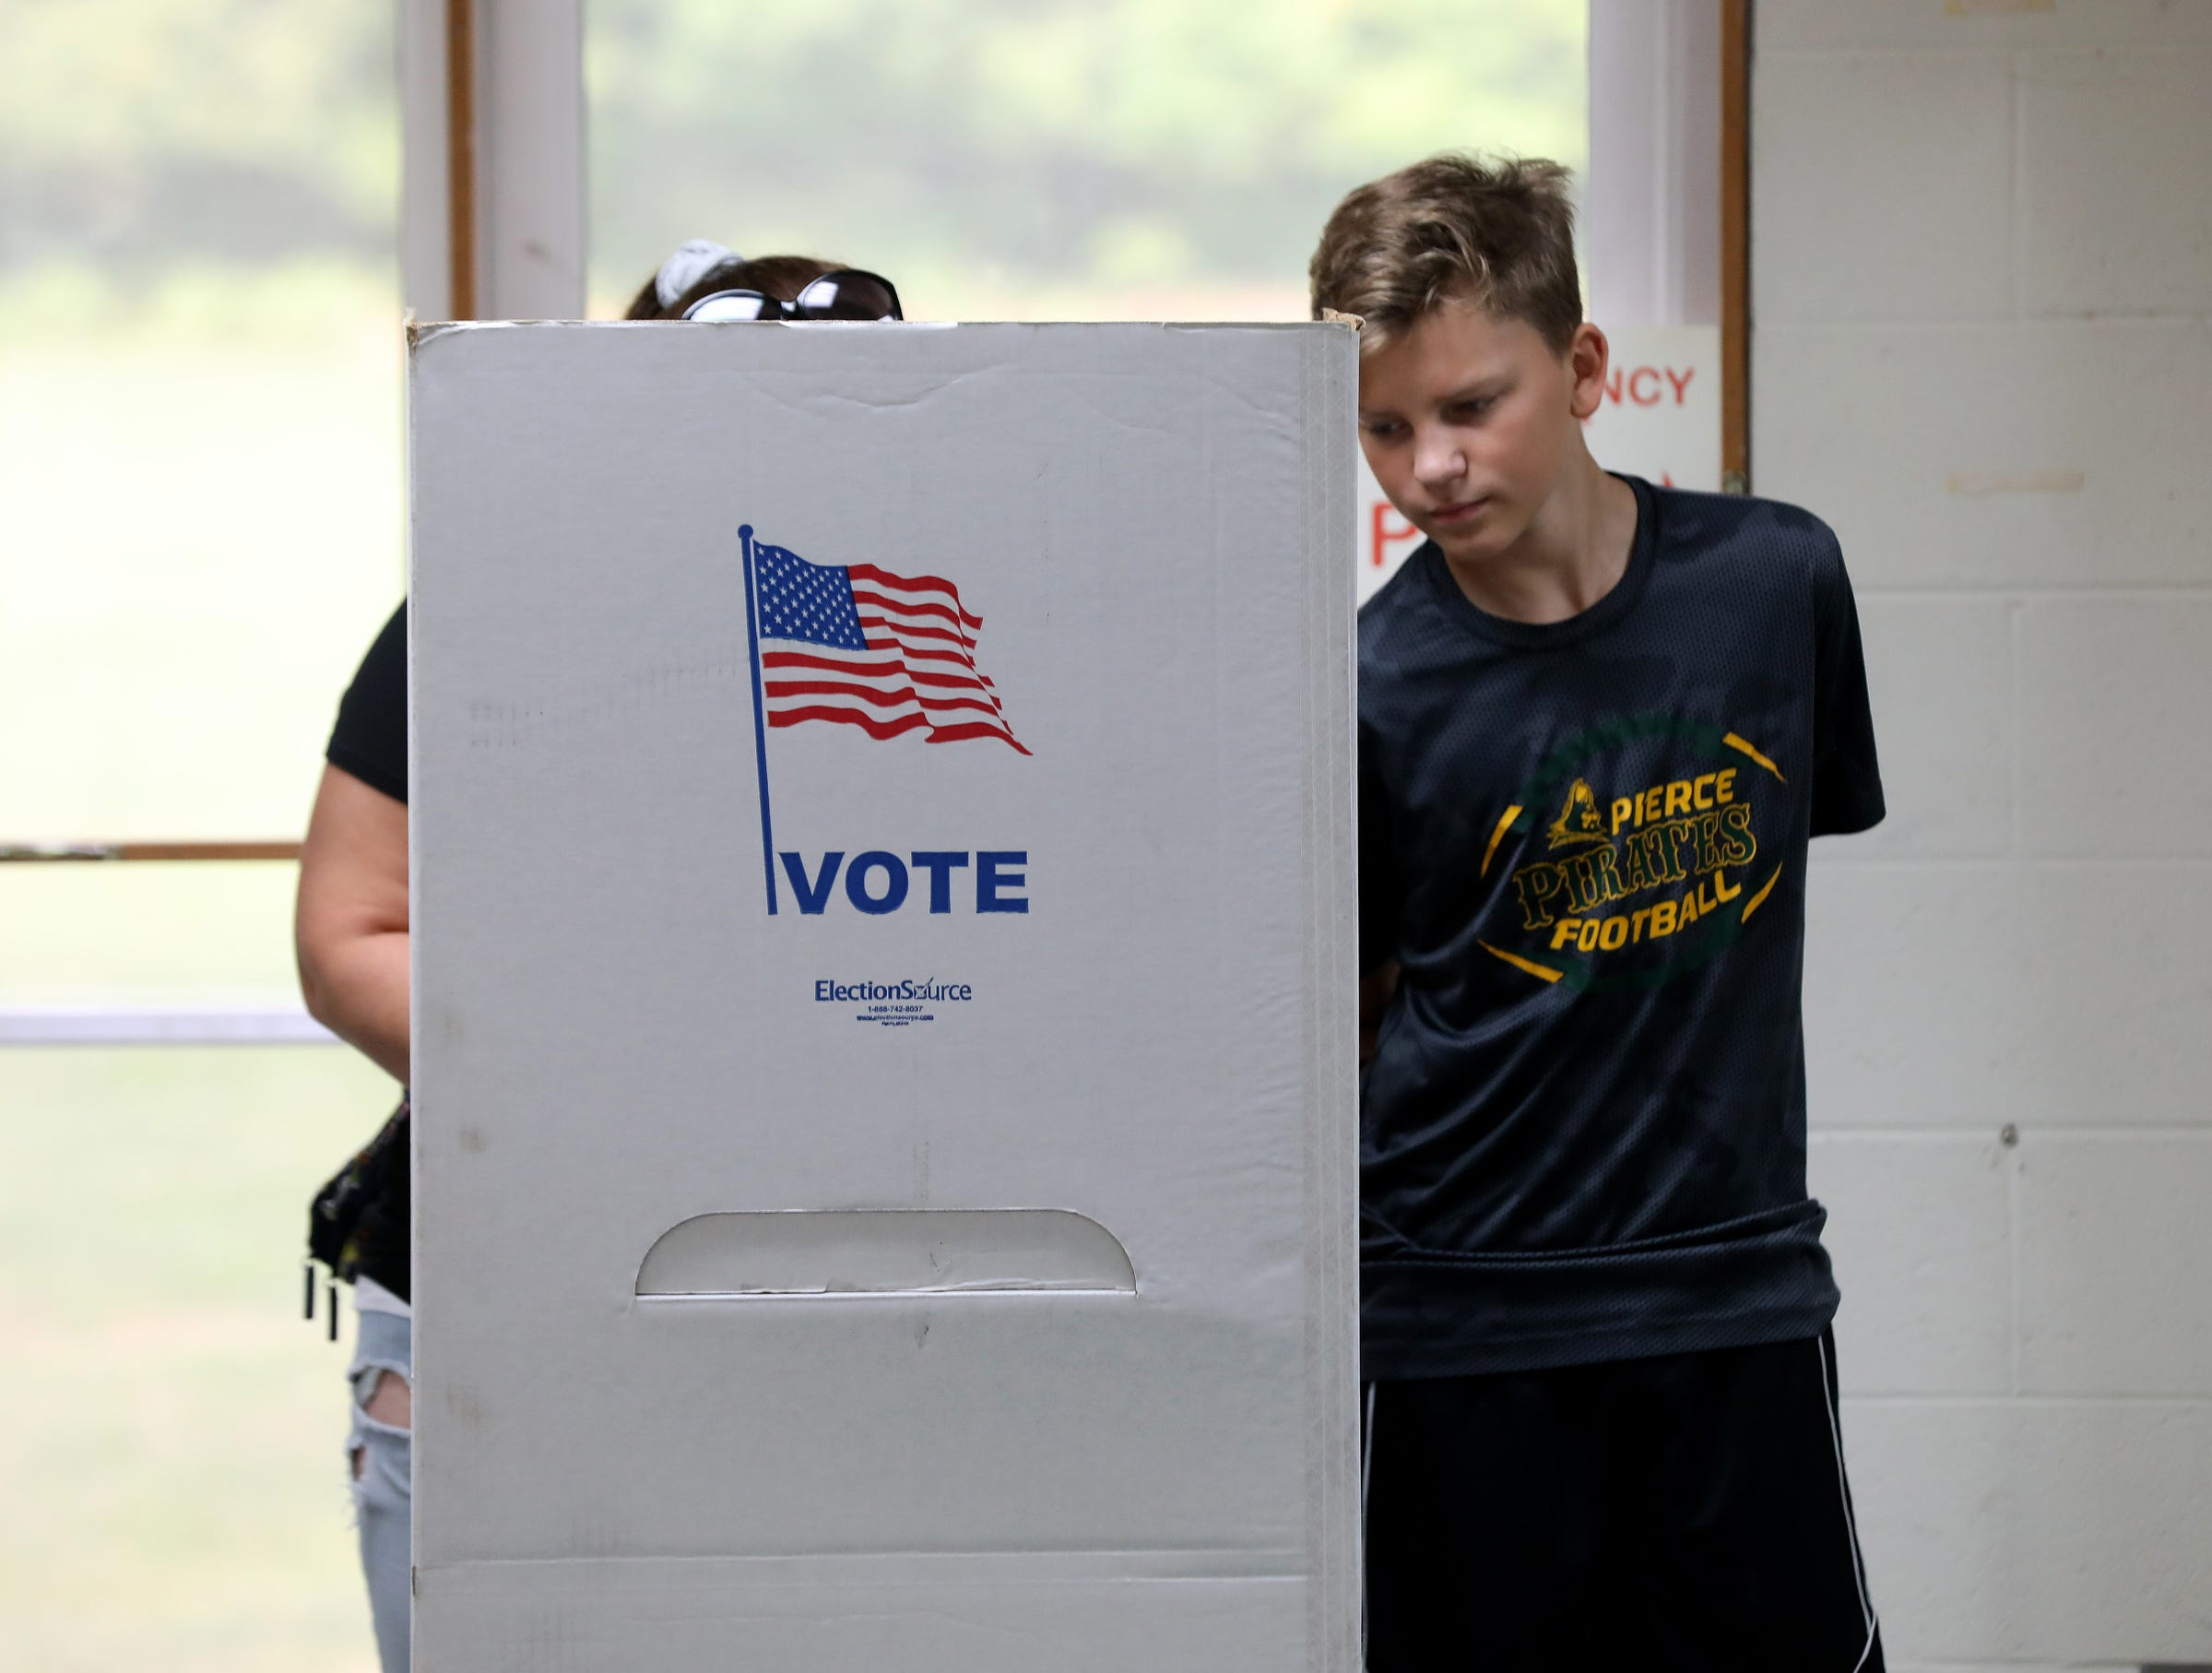 Tamara McManus, 27 of Waterford wanted to bring her son Luke Dusseau, 13, right, of Waterford into Precinct 11 in Waterford on Tuesday, August 7, 2018 to learn and understand the election process.